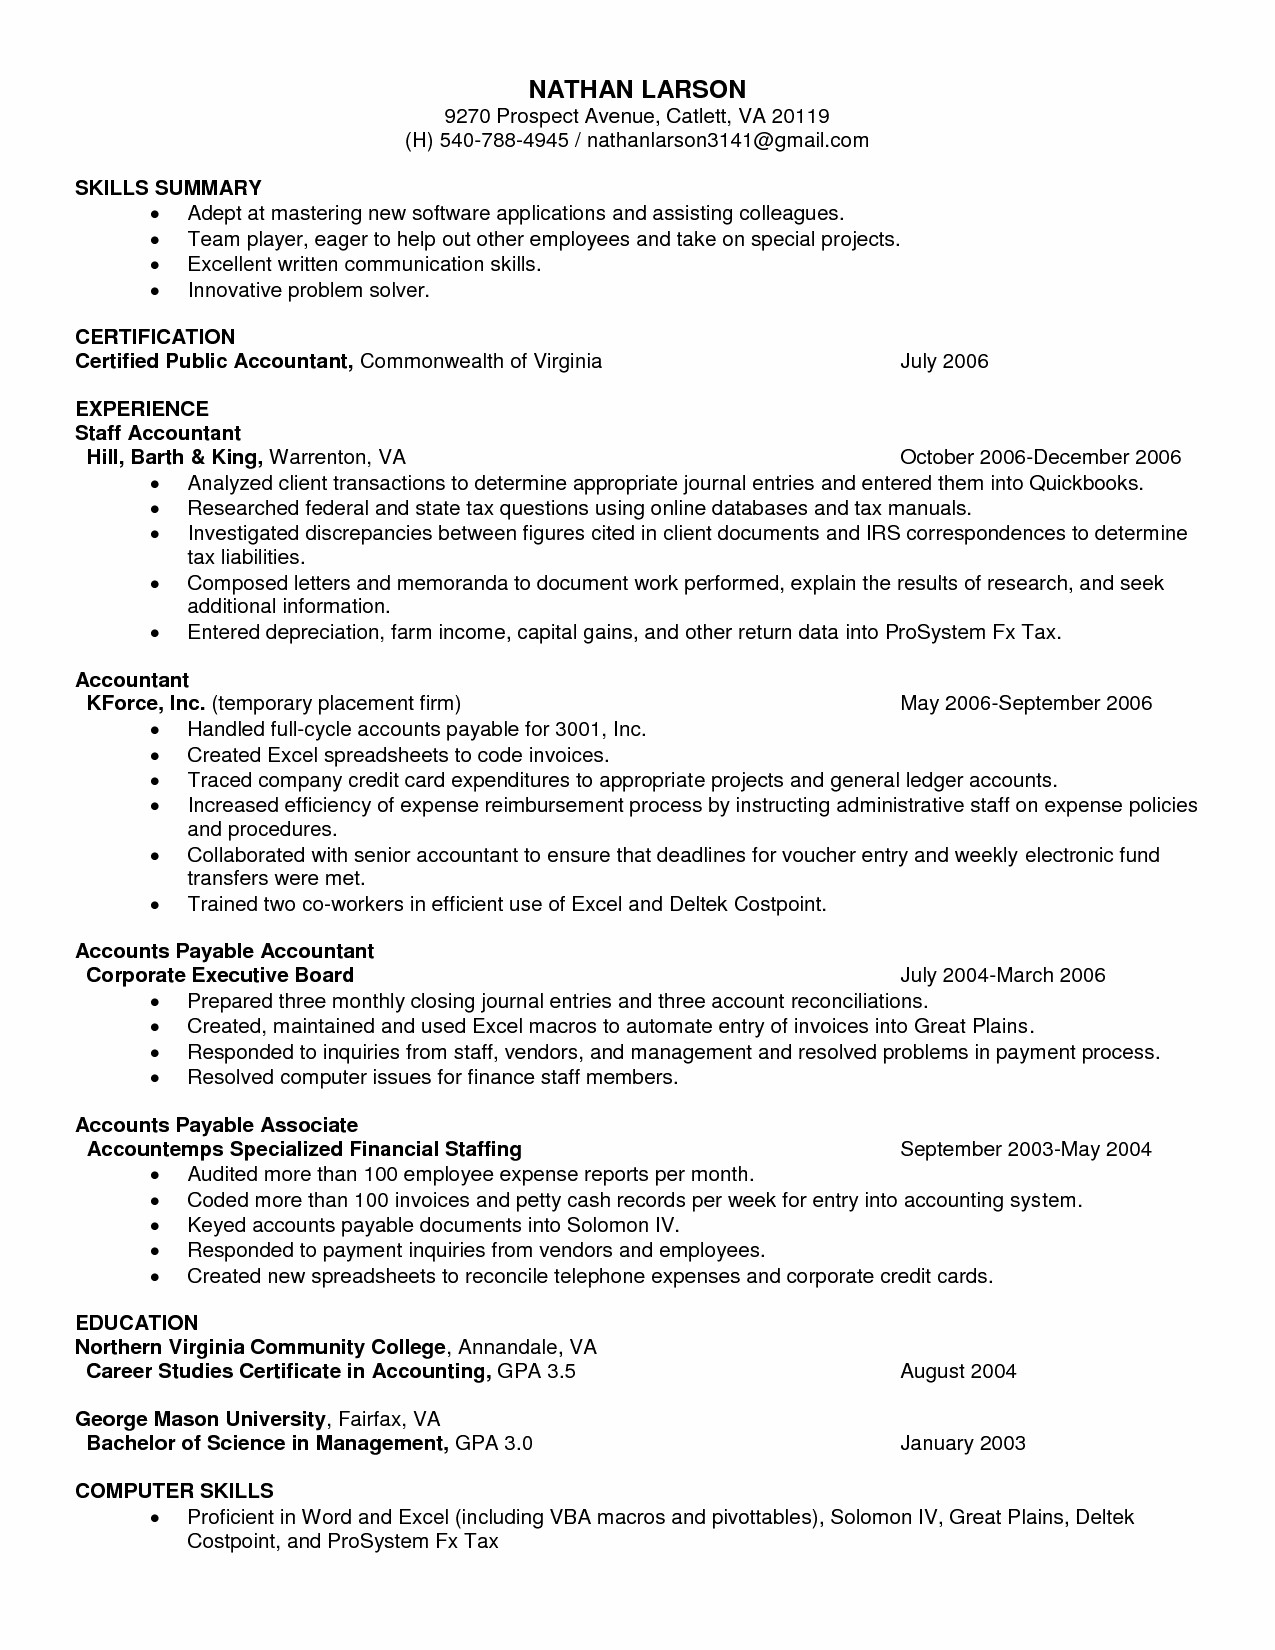 Apache Open Office Resume Template - Cover Letter Template Open Fice Resume Temp Final so